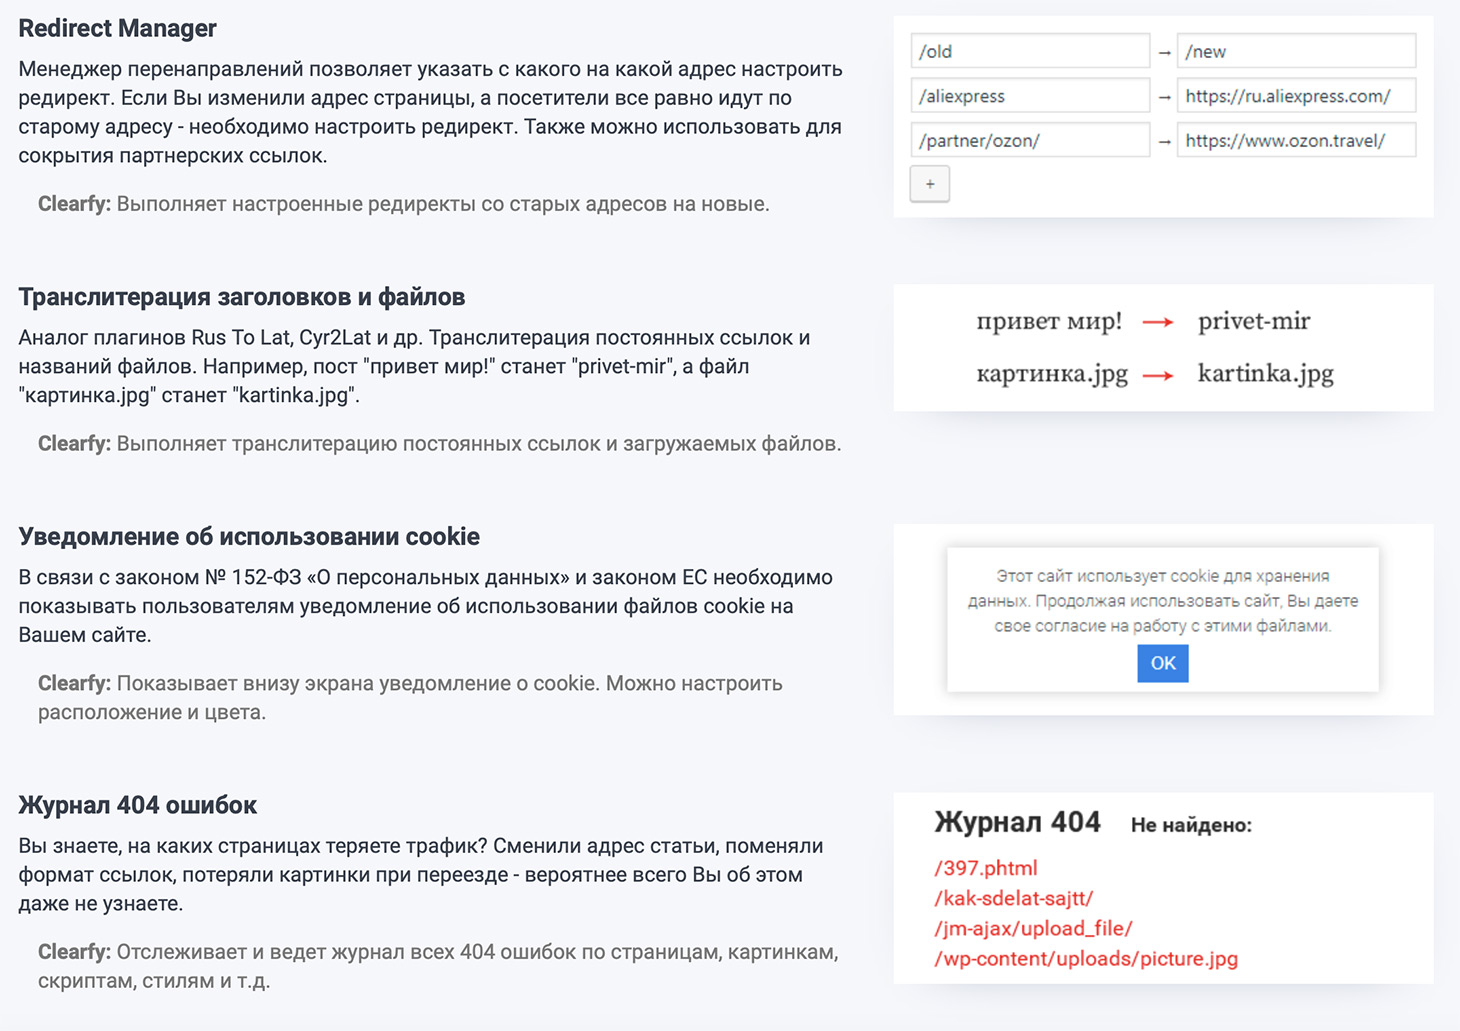 Как убрать и удалить страницы авторов в WordPress